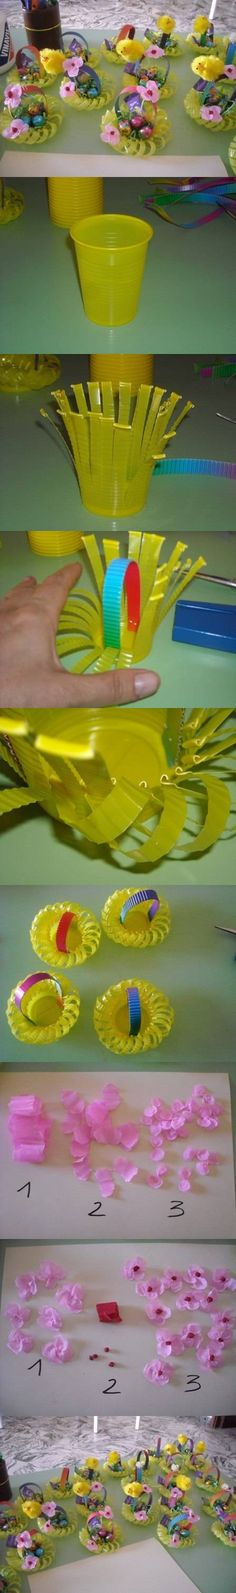 DIY Plastic Cup Flower Basket